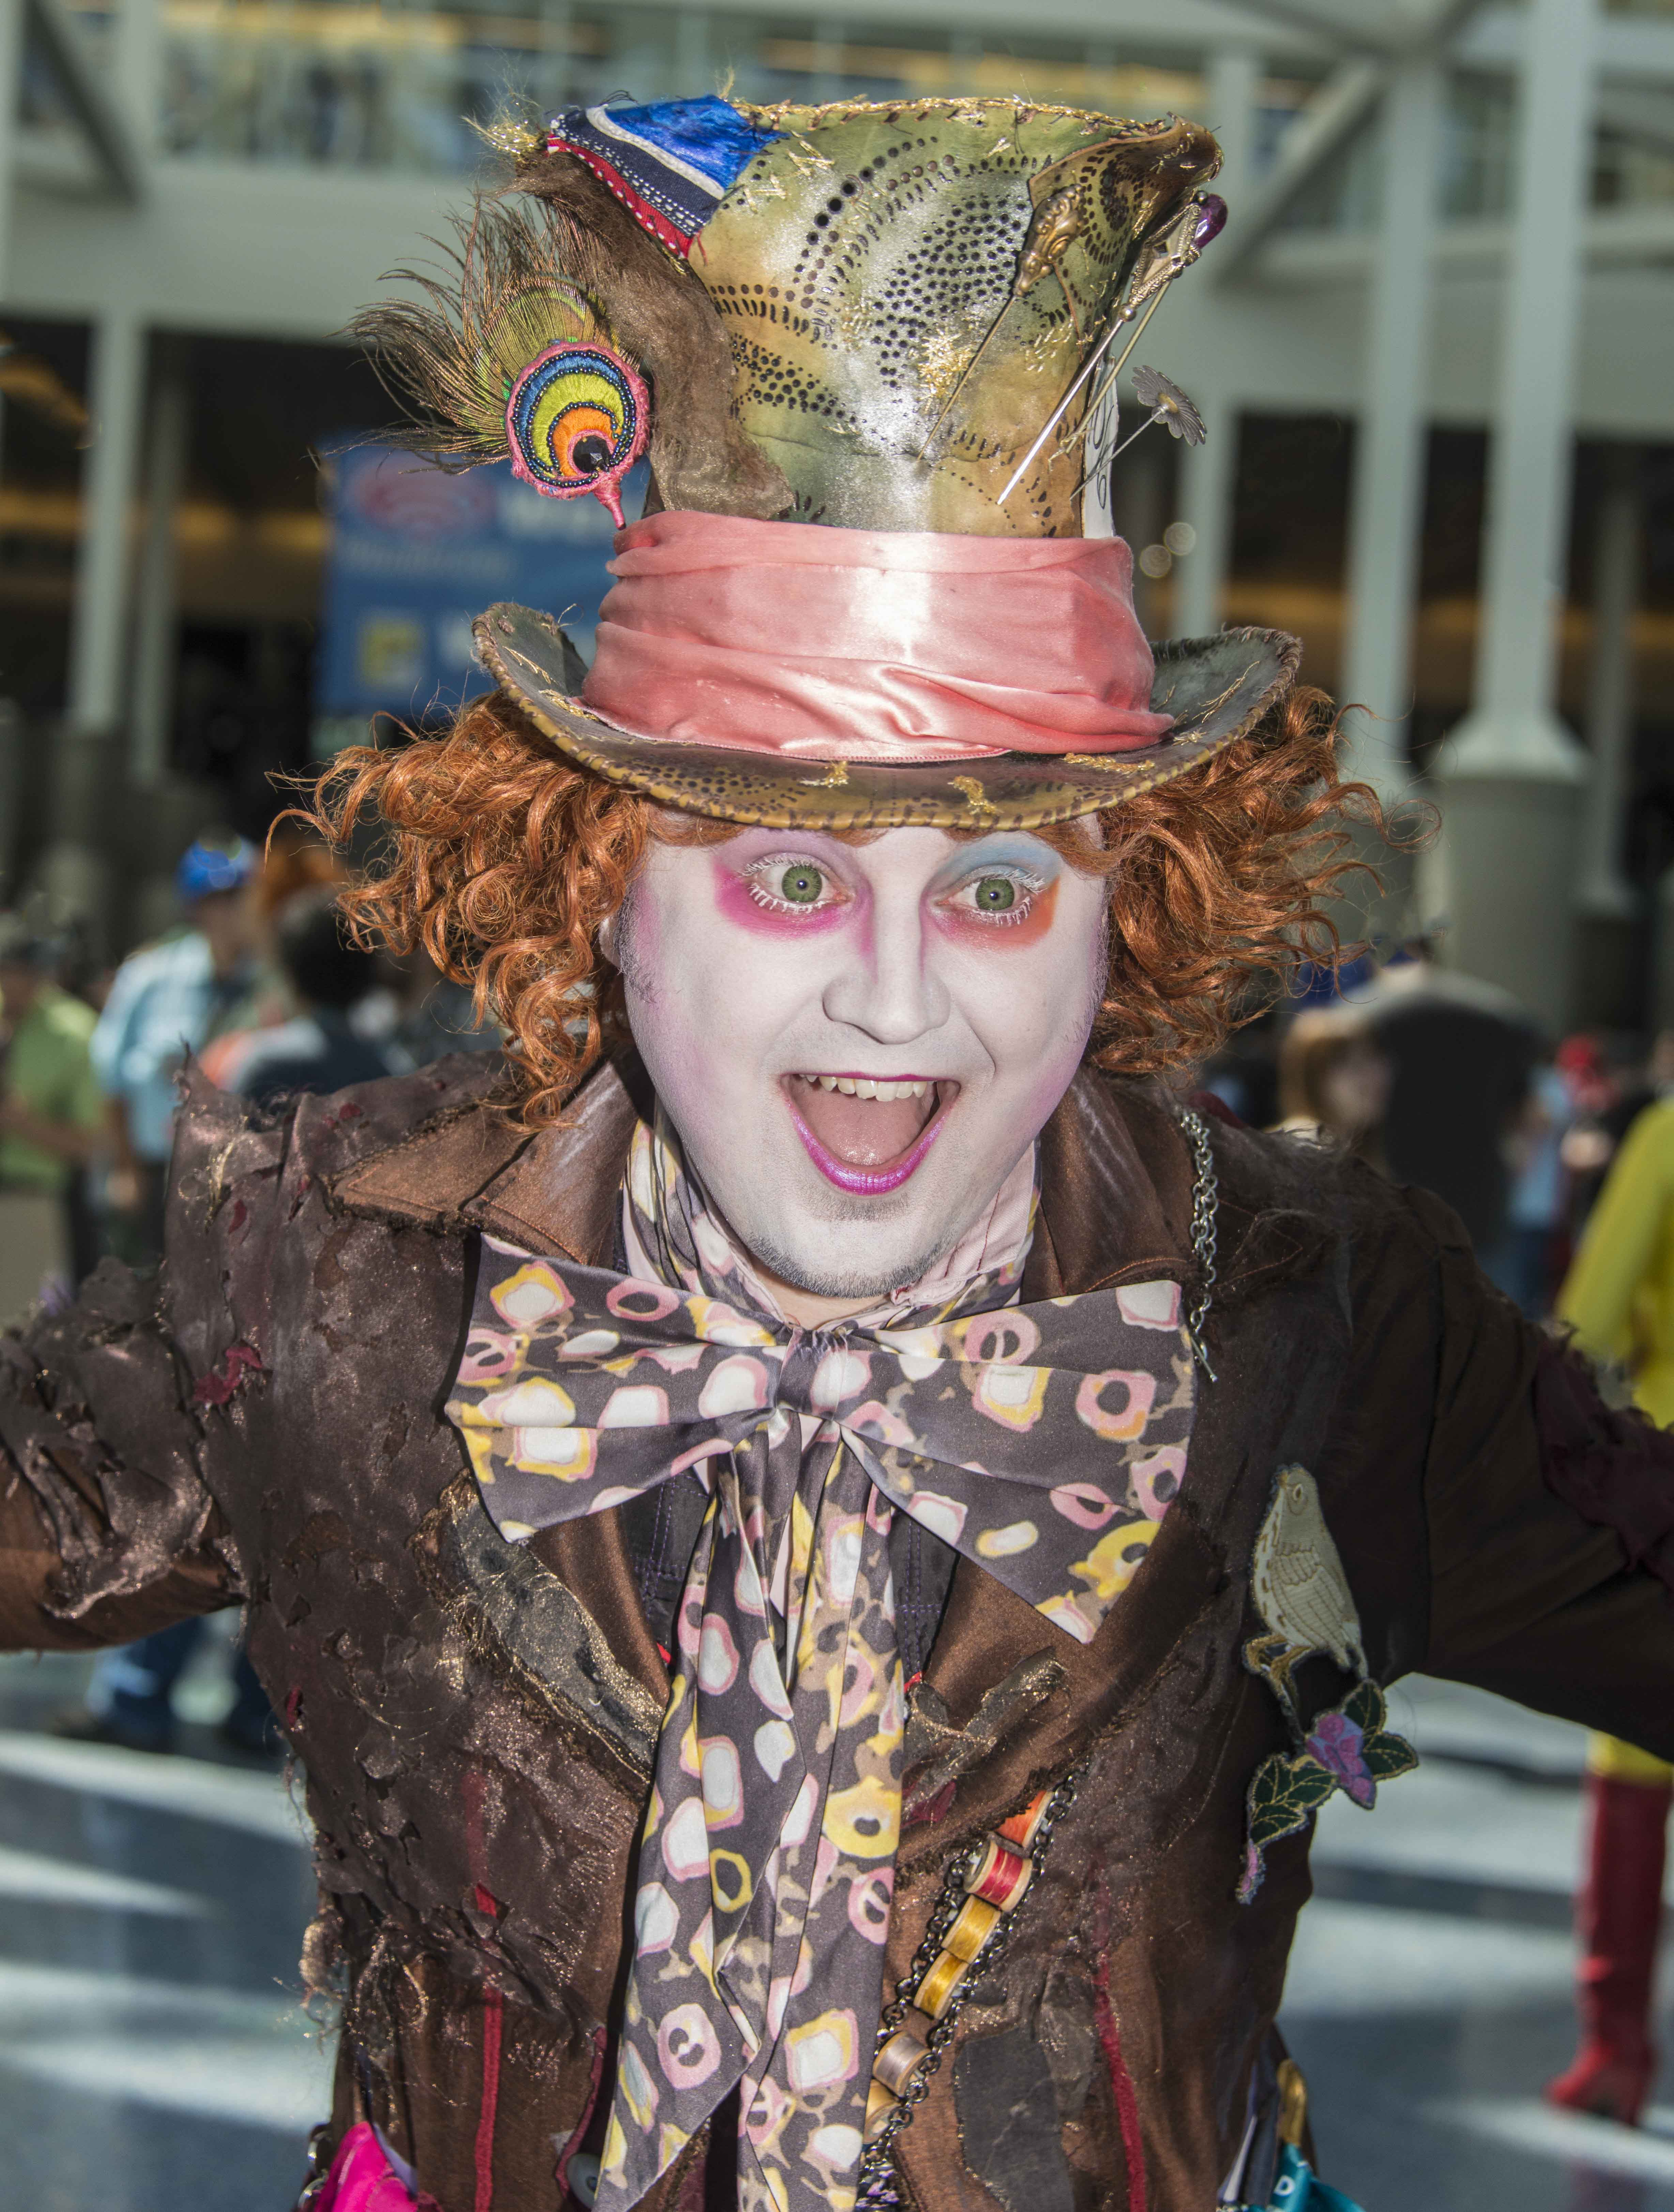 The very happy mad hatter. — Photo by Lawrence Sherwin ©